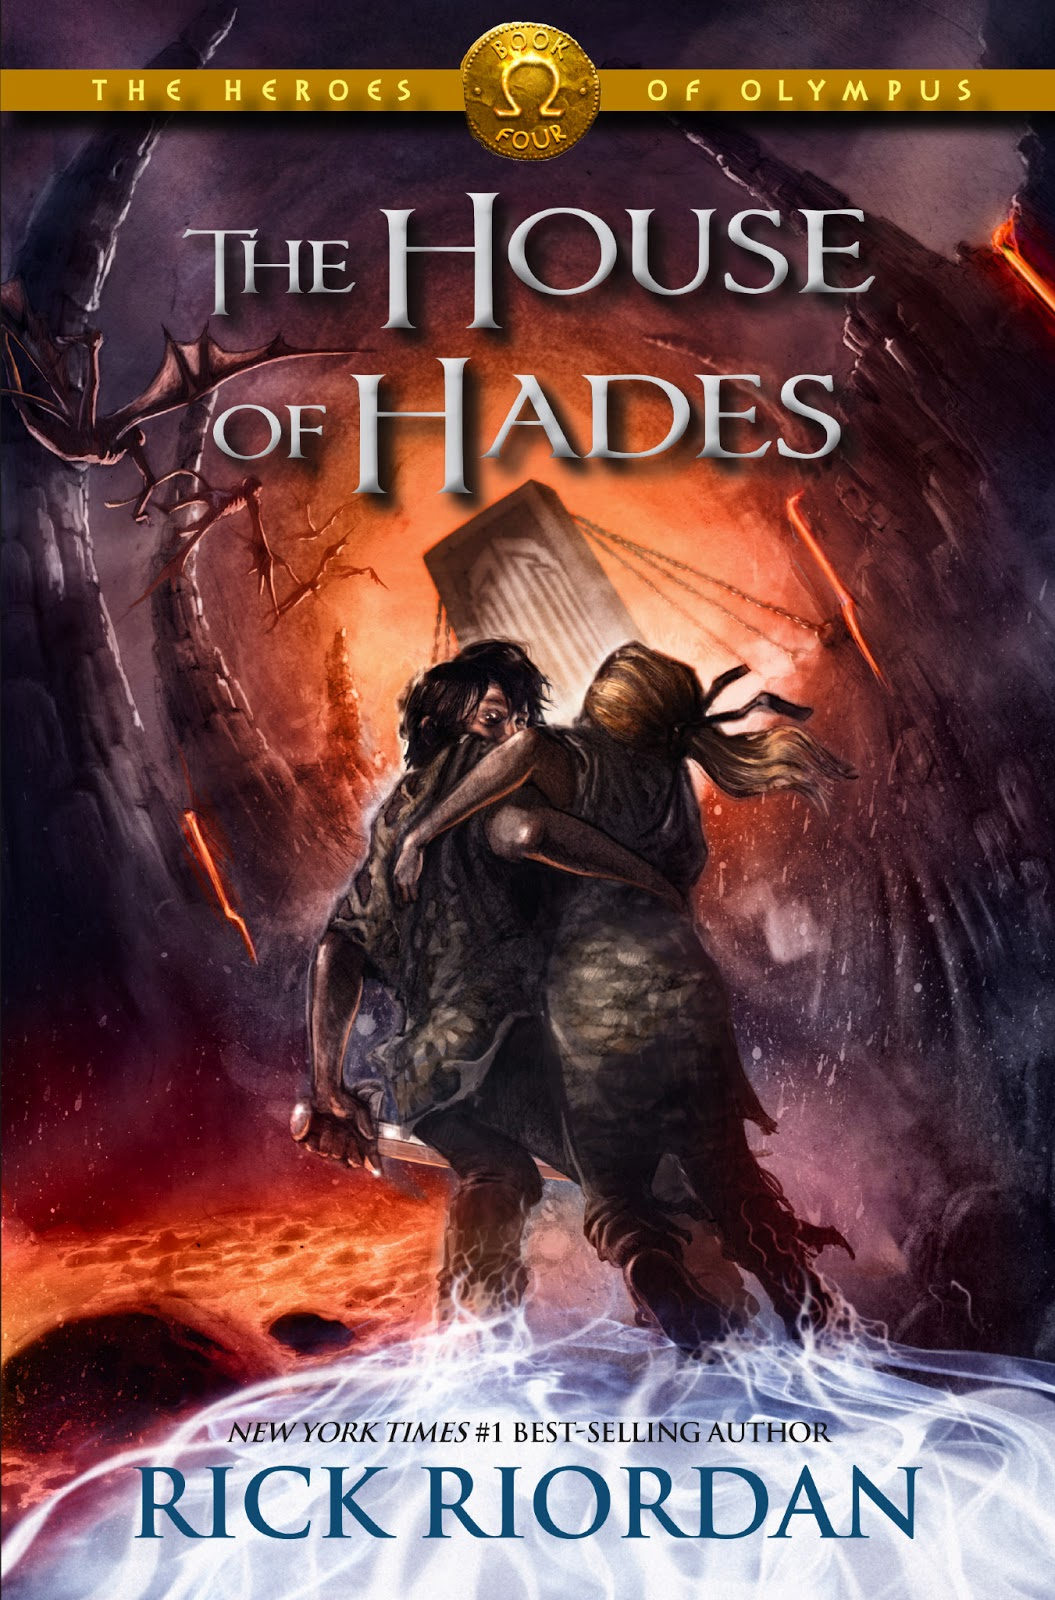 RICK RIORDAN The House of Hades SIGNED 1st LIMITED in Slipcase of 1000